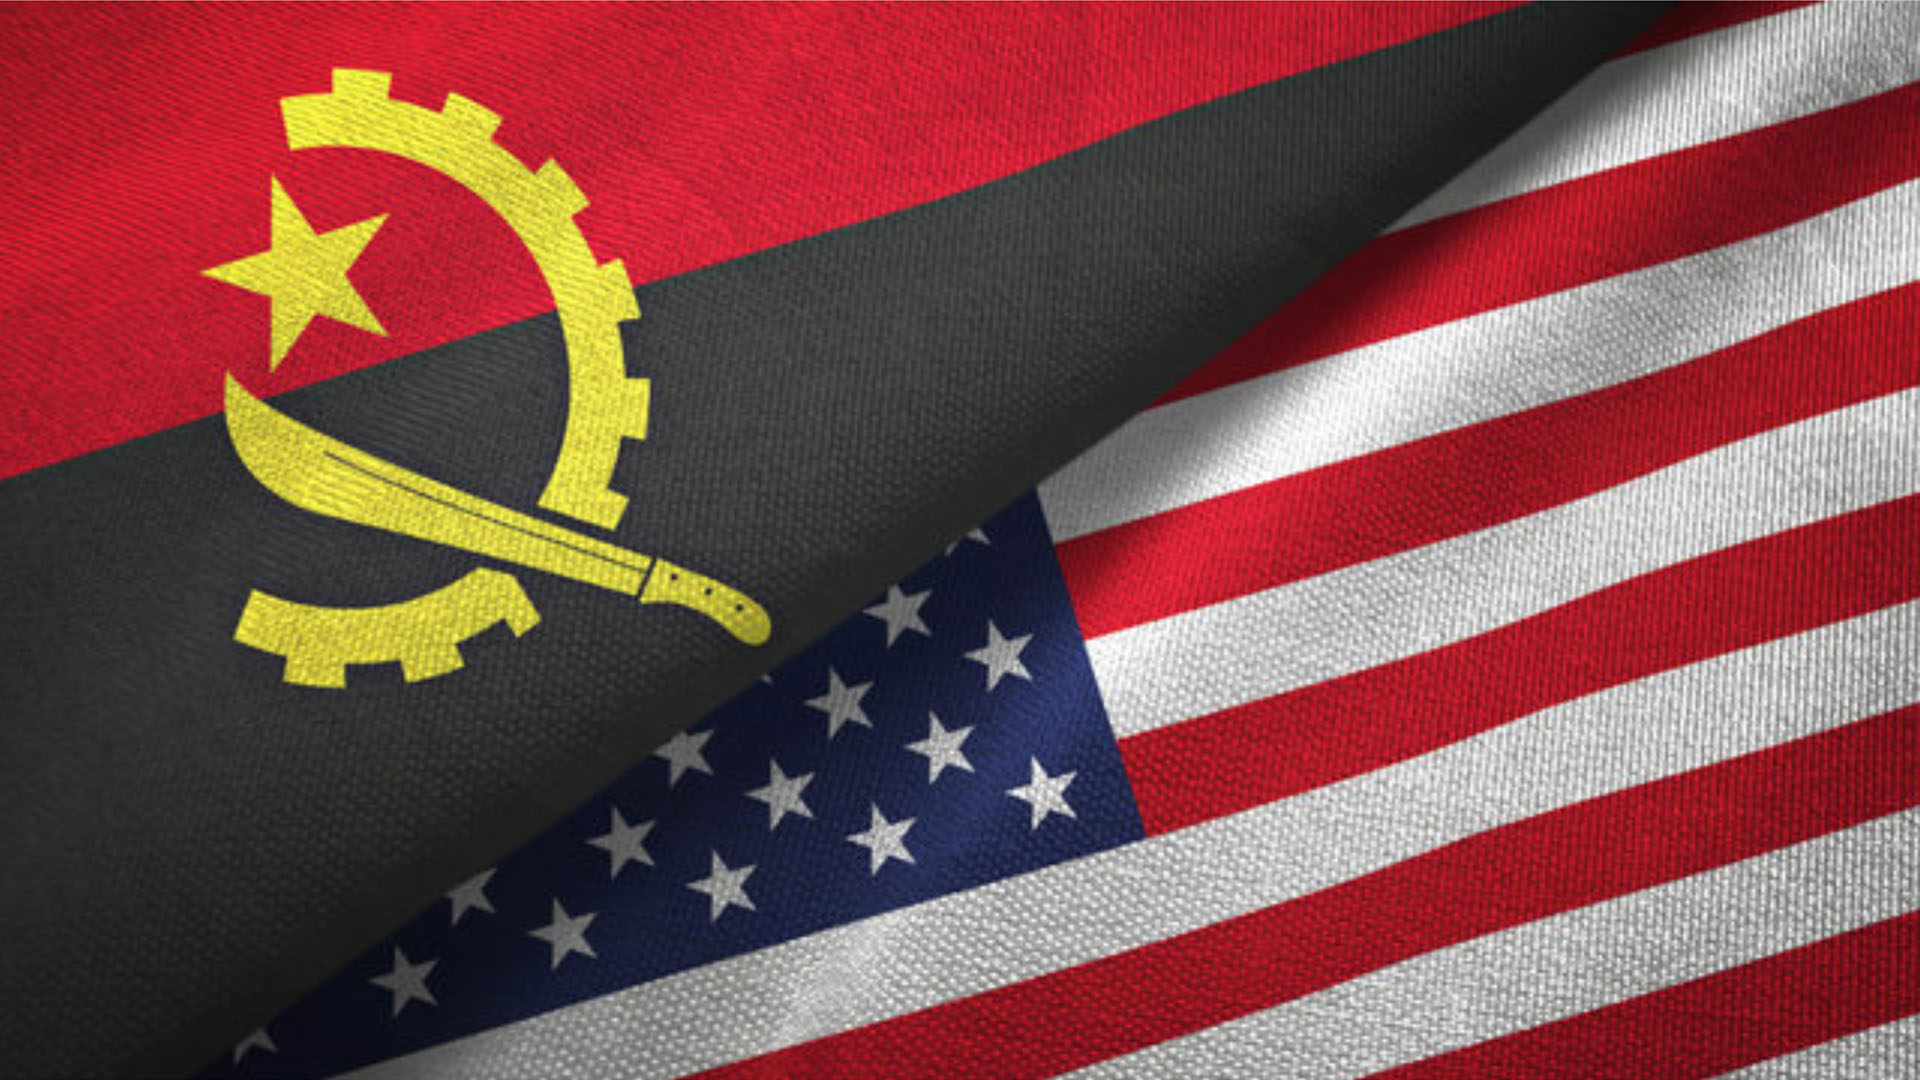 THE US-ANGOLA DIPLOMATIC RELATIONS